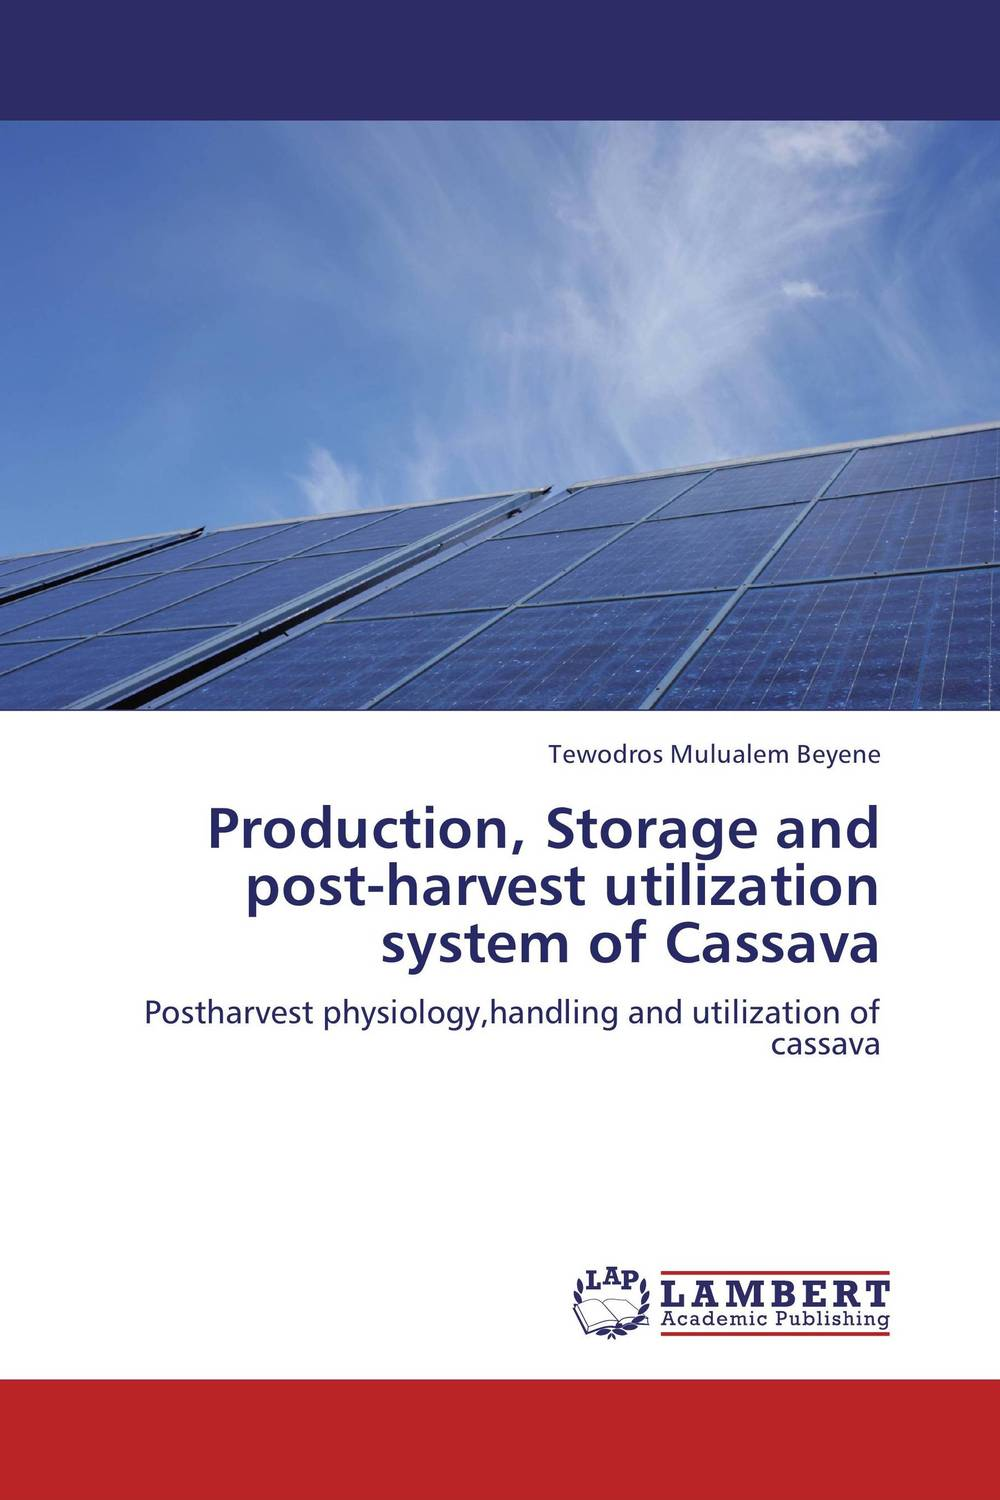 Production, Storage and post-harvest utilization system of Cassava cold storage accessibility and agricultural production by smallholders